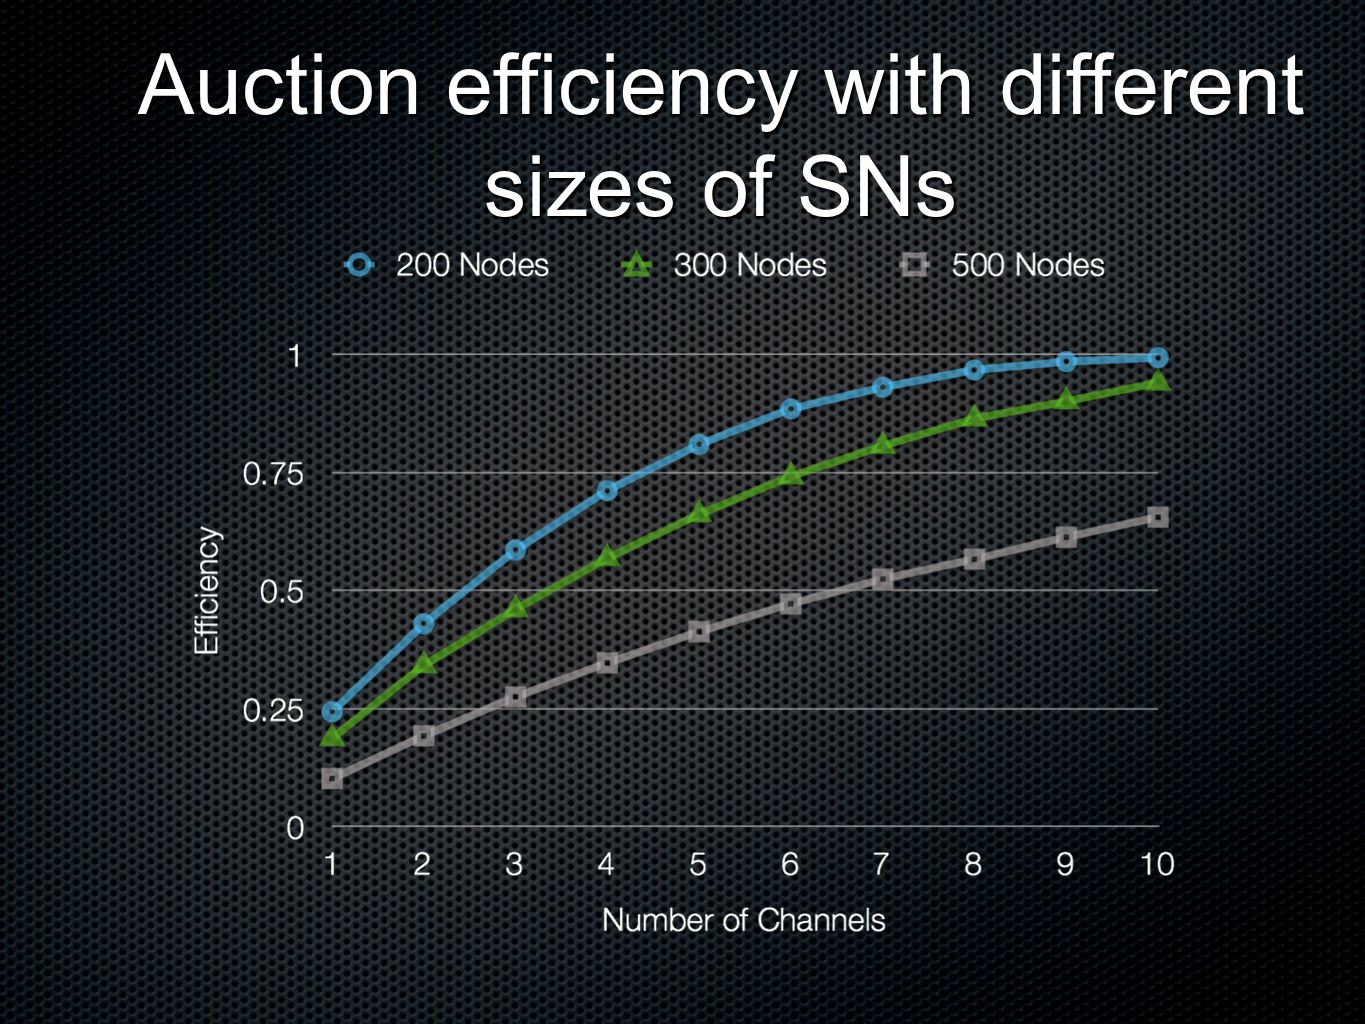 Auction efficiency with different sizes of SNs